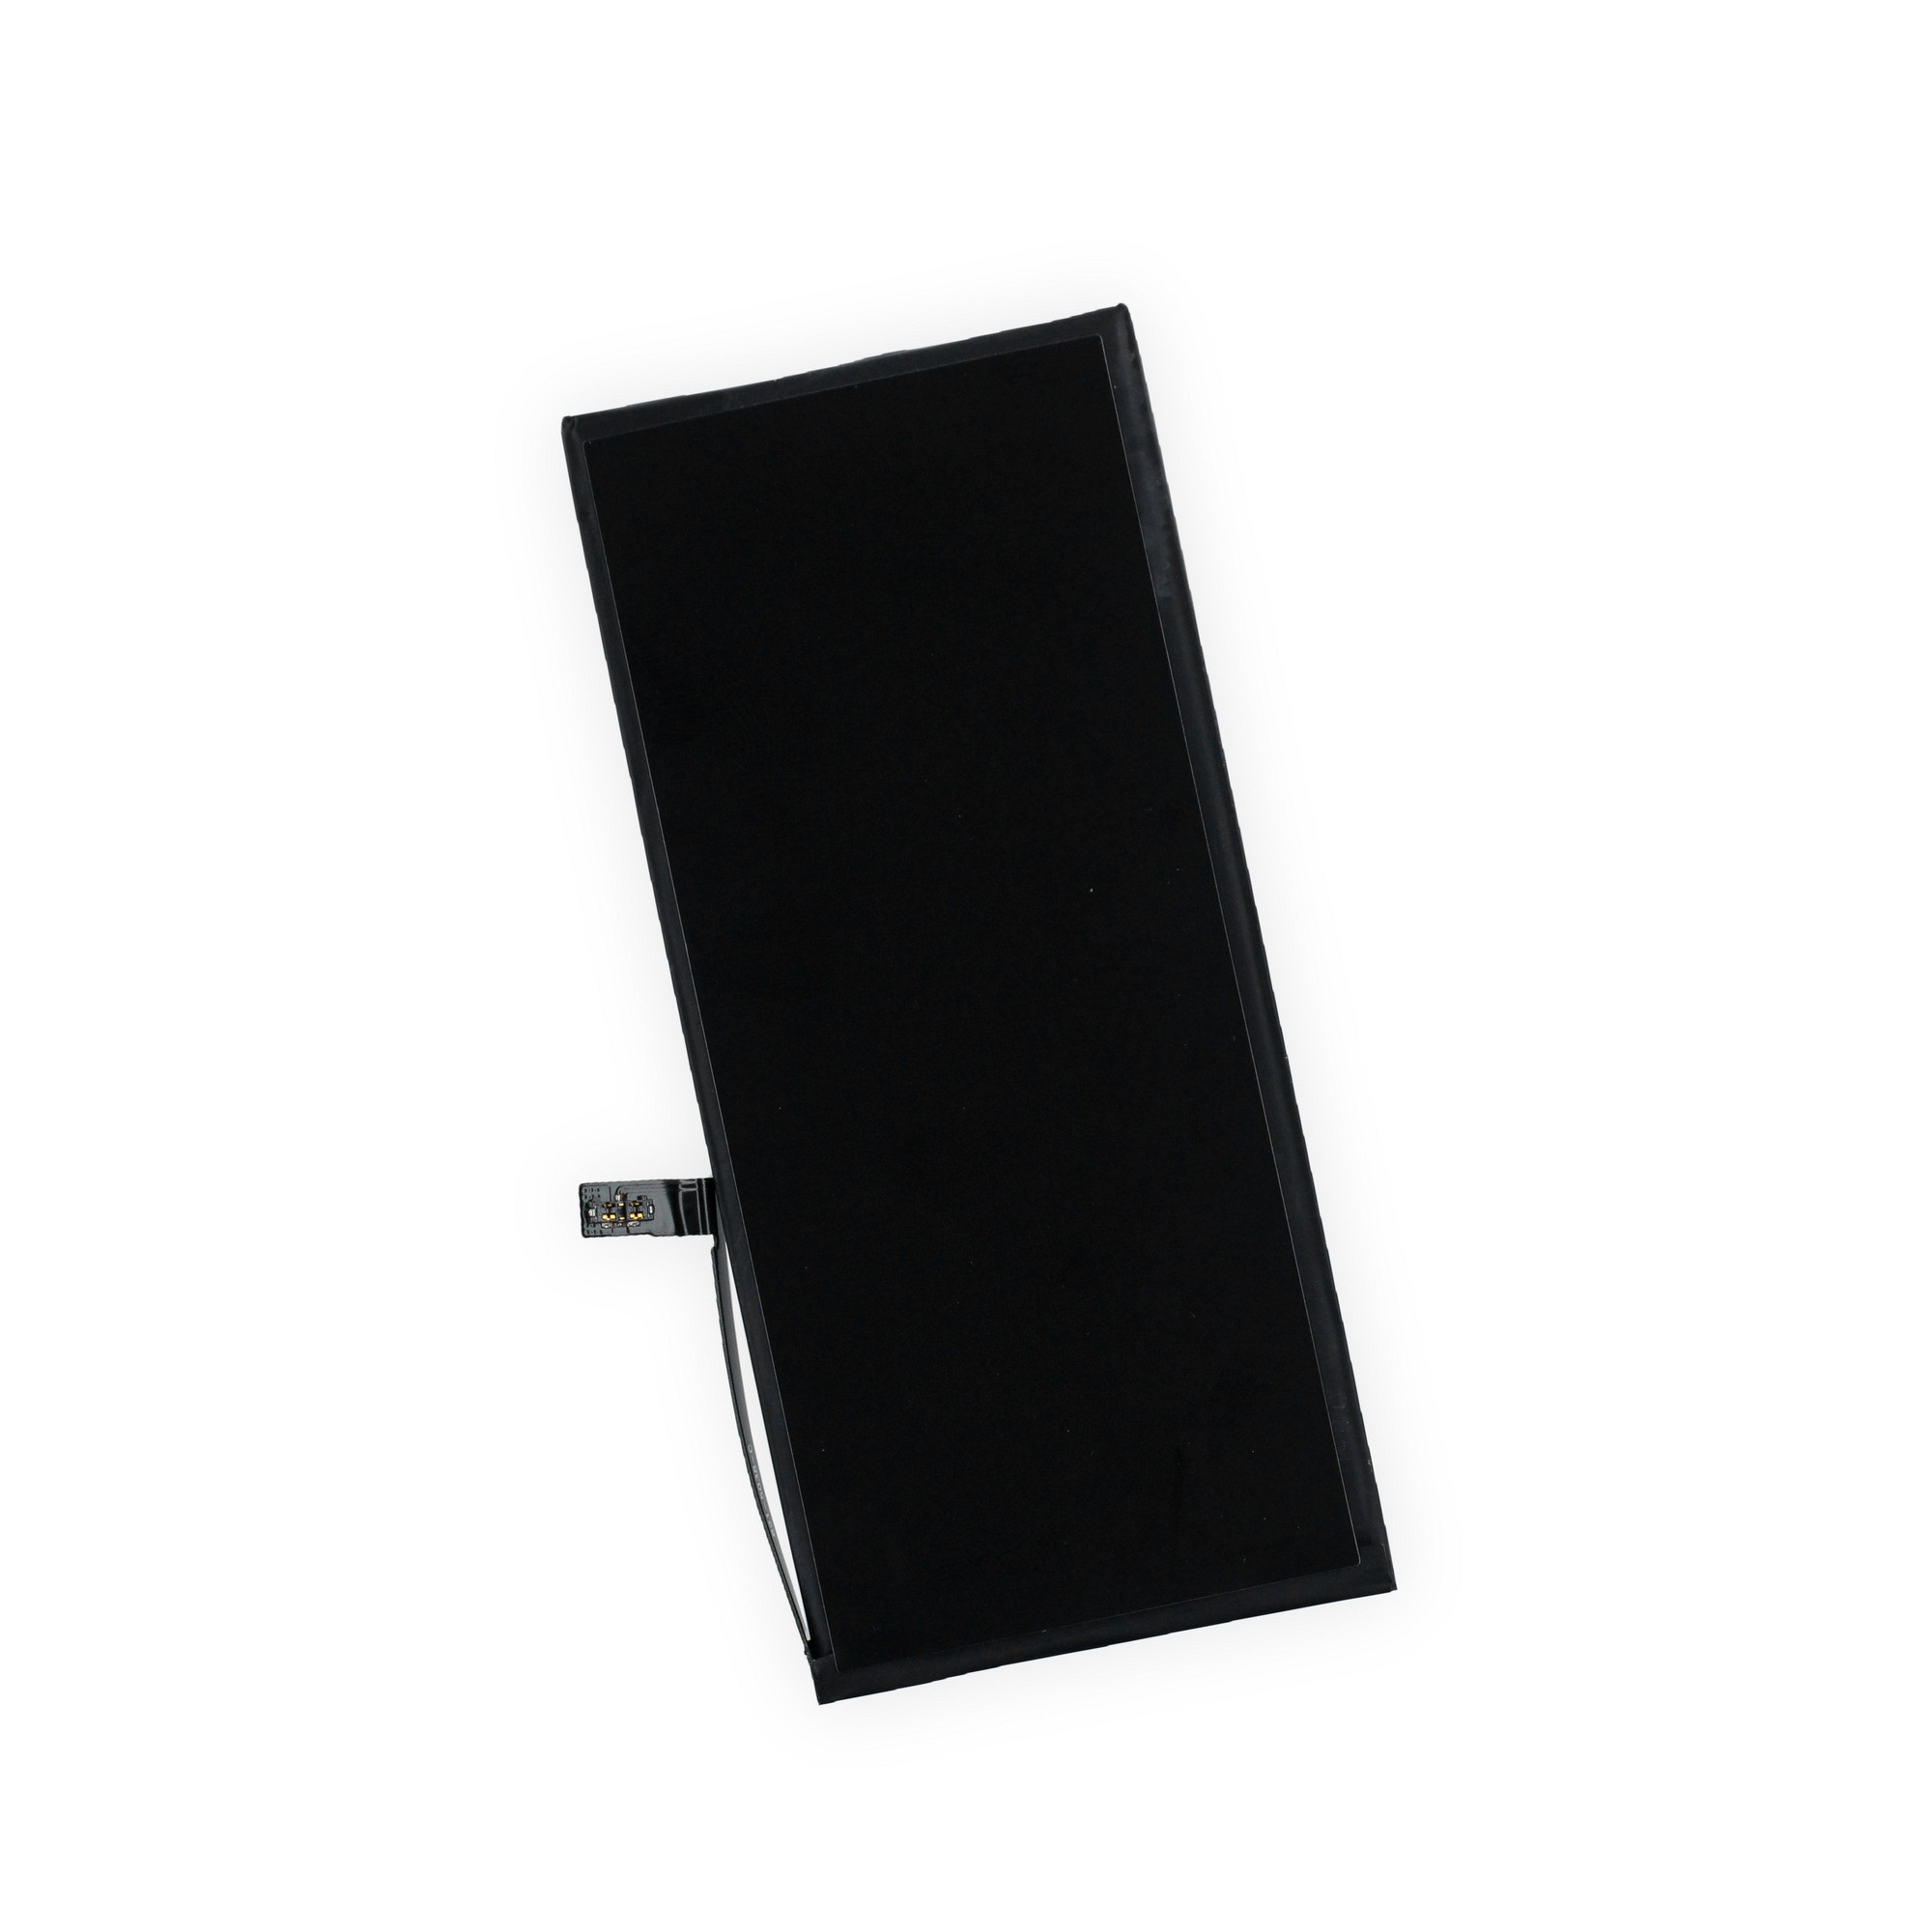 iPhone 7 Plus Replacement Battery, New, Part Only, IF333-002-1